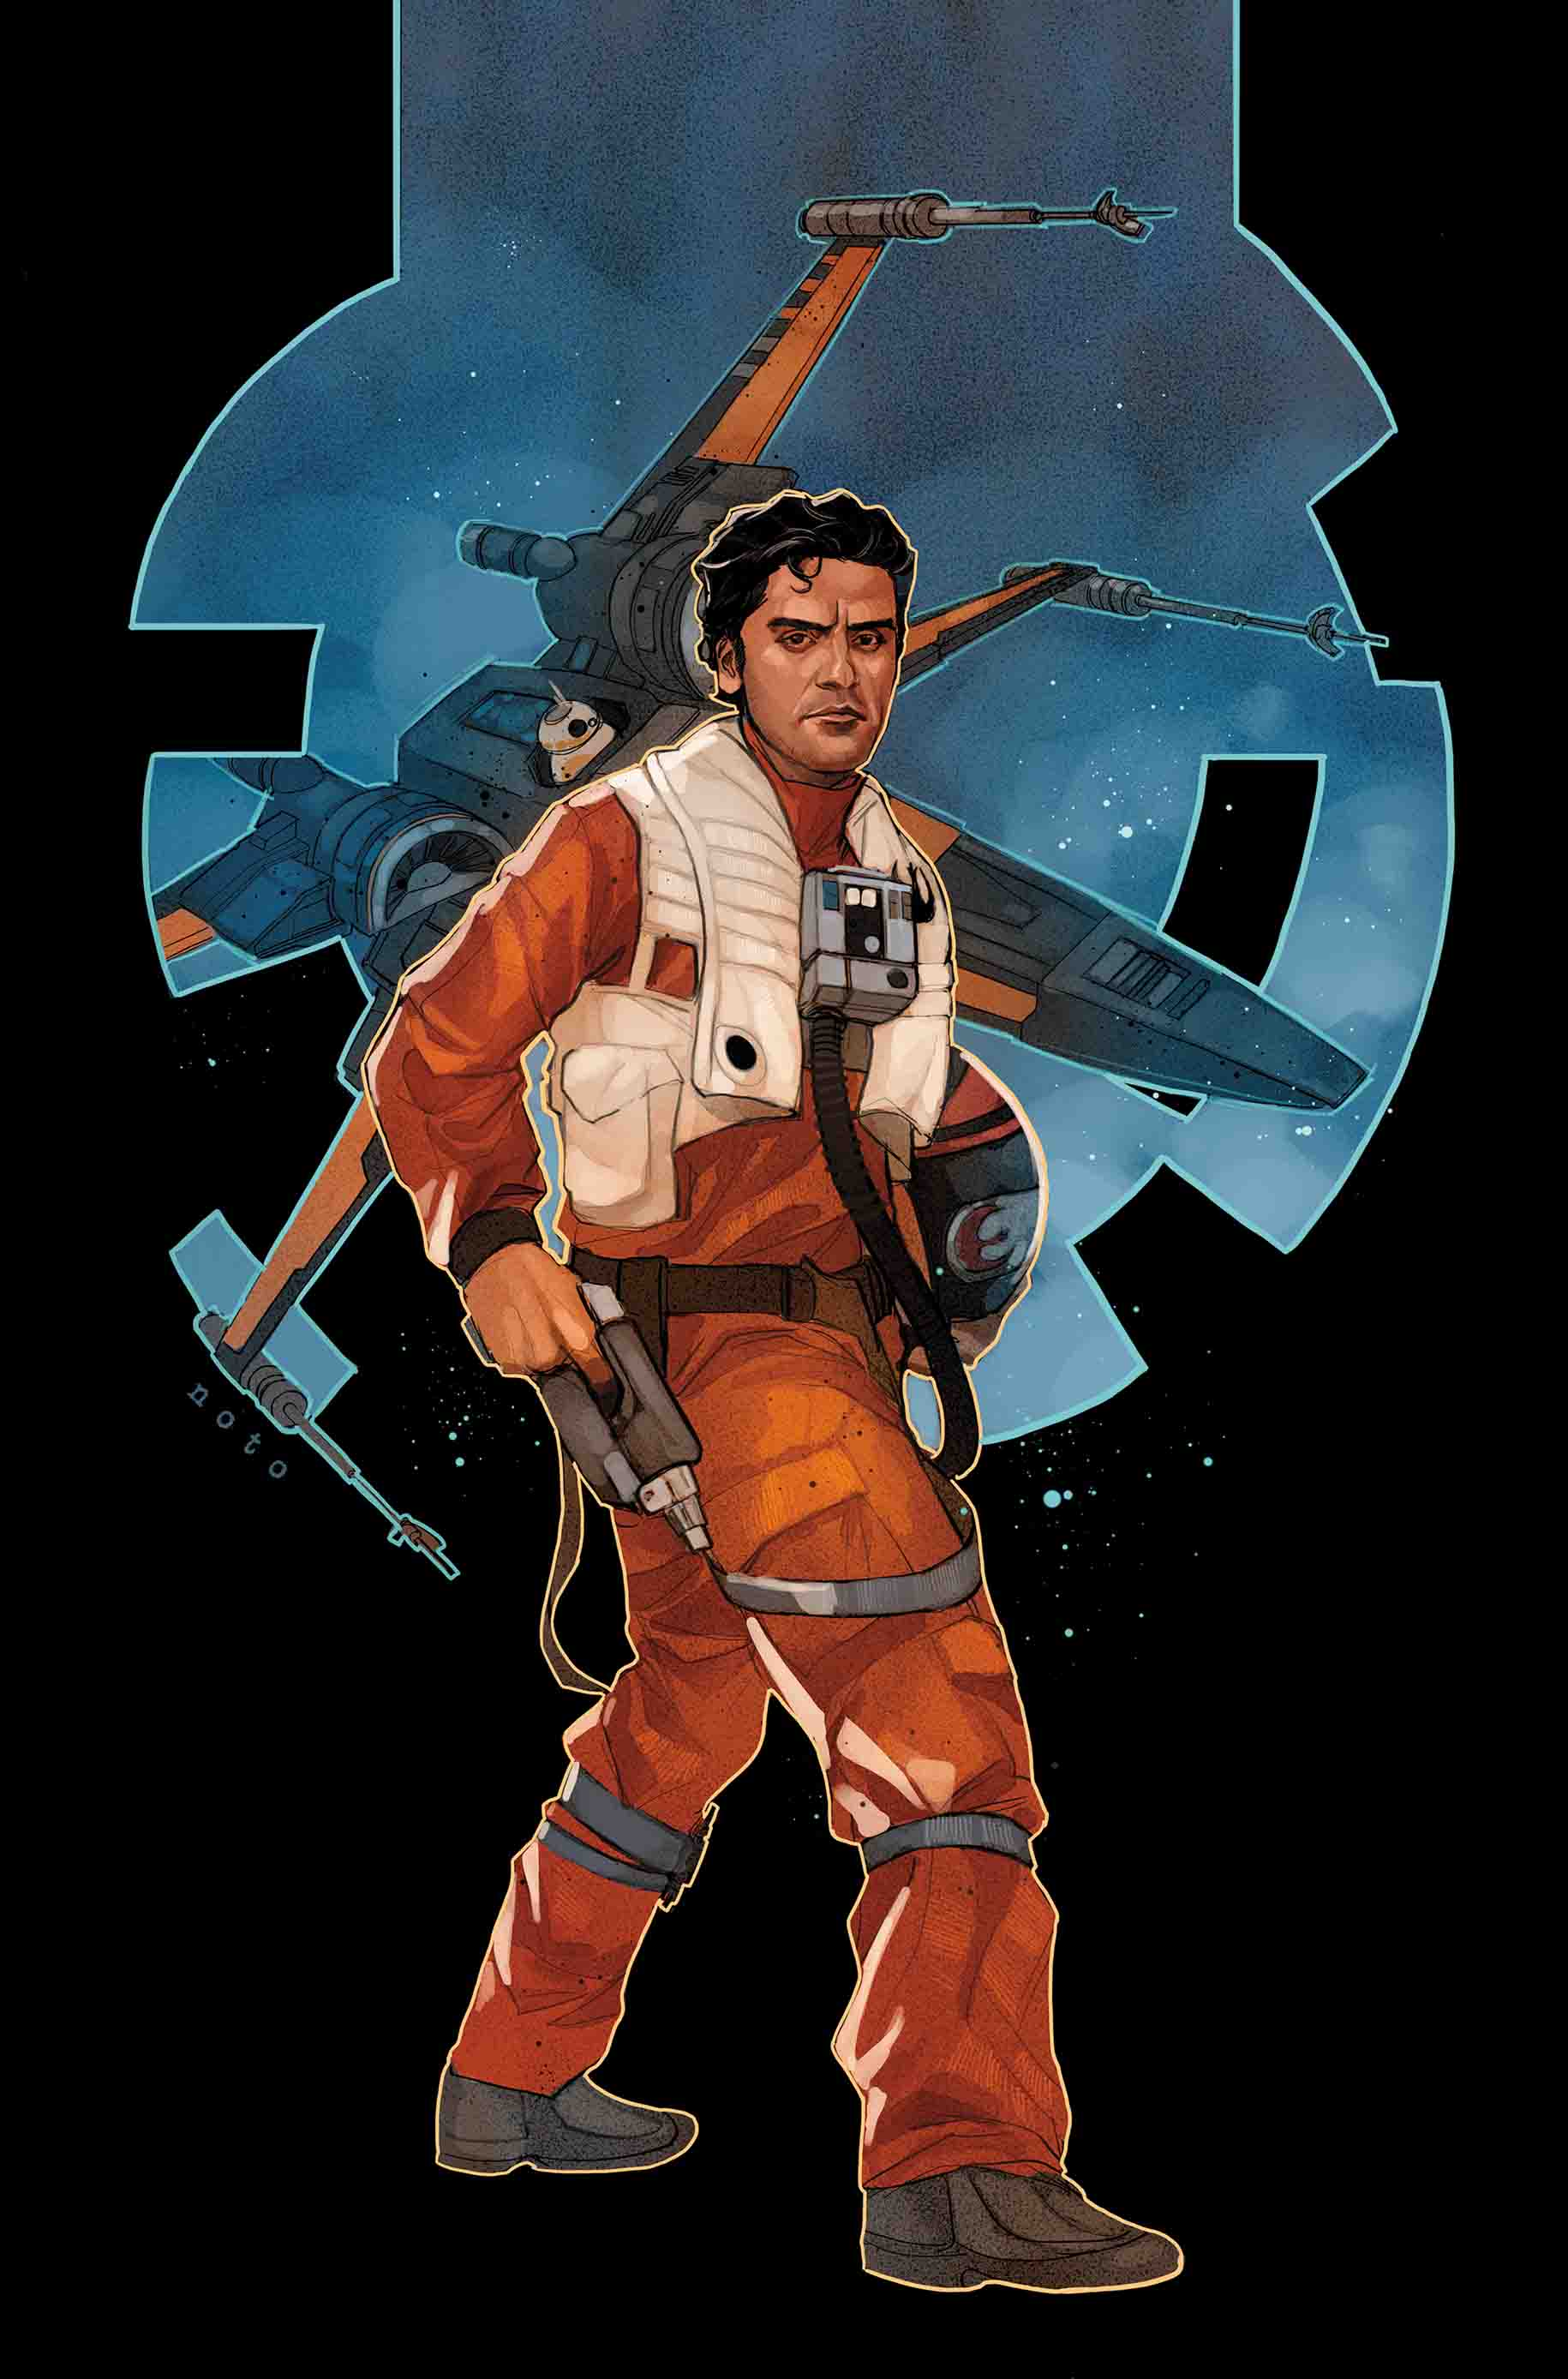 Age of Resistance - Poe Dameron #1